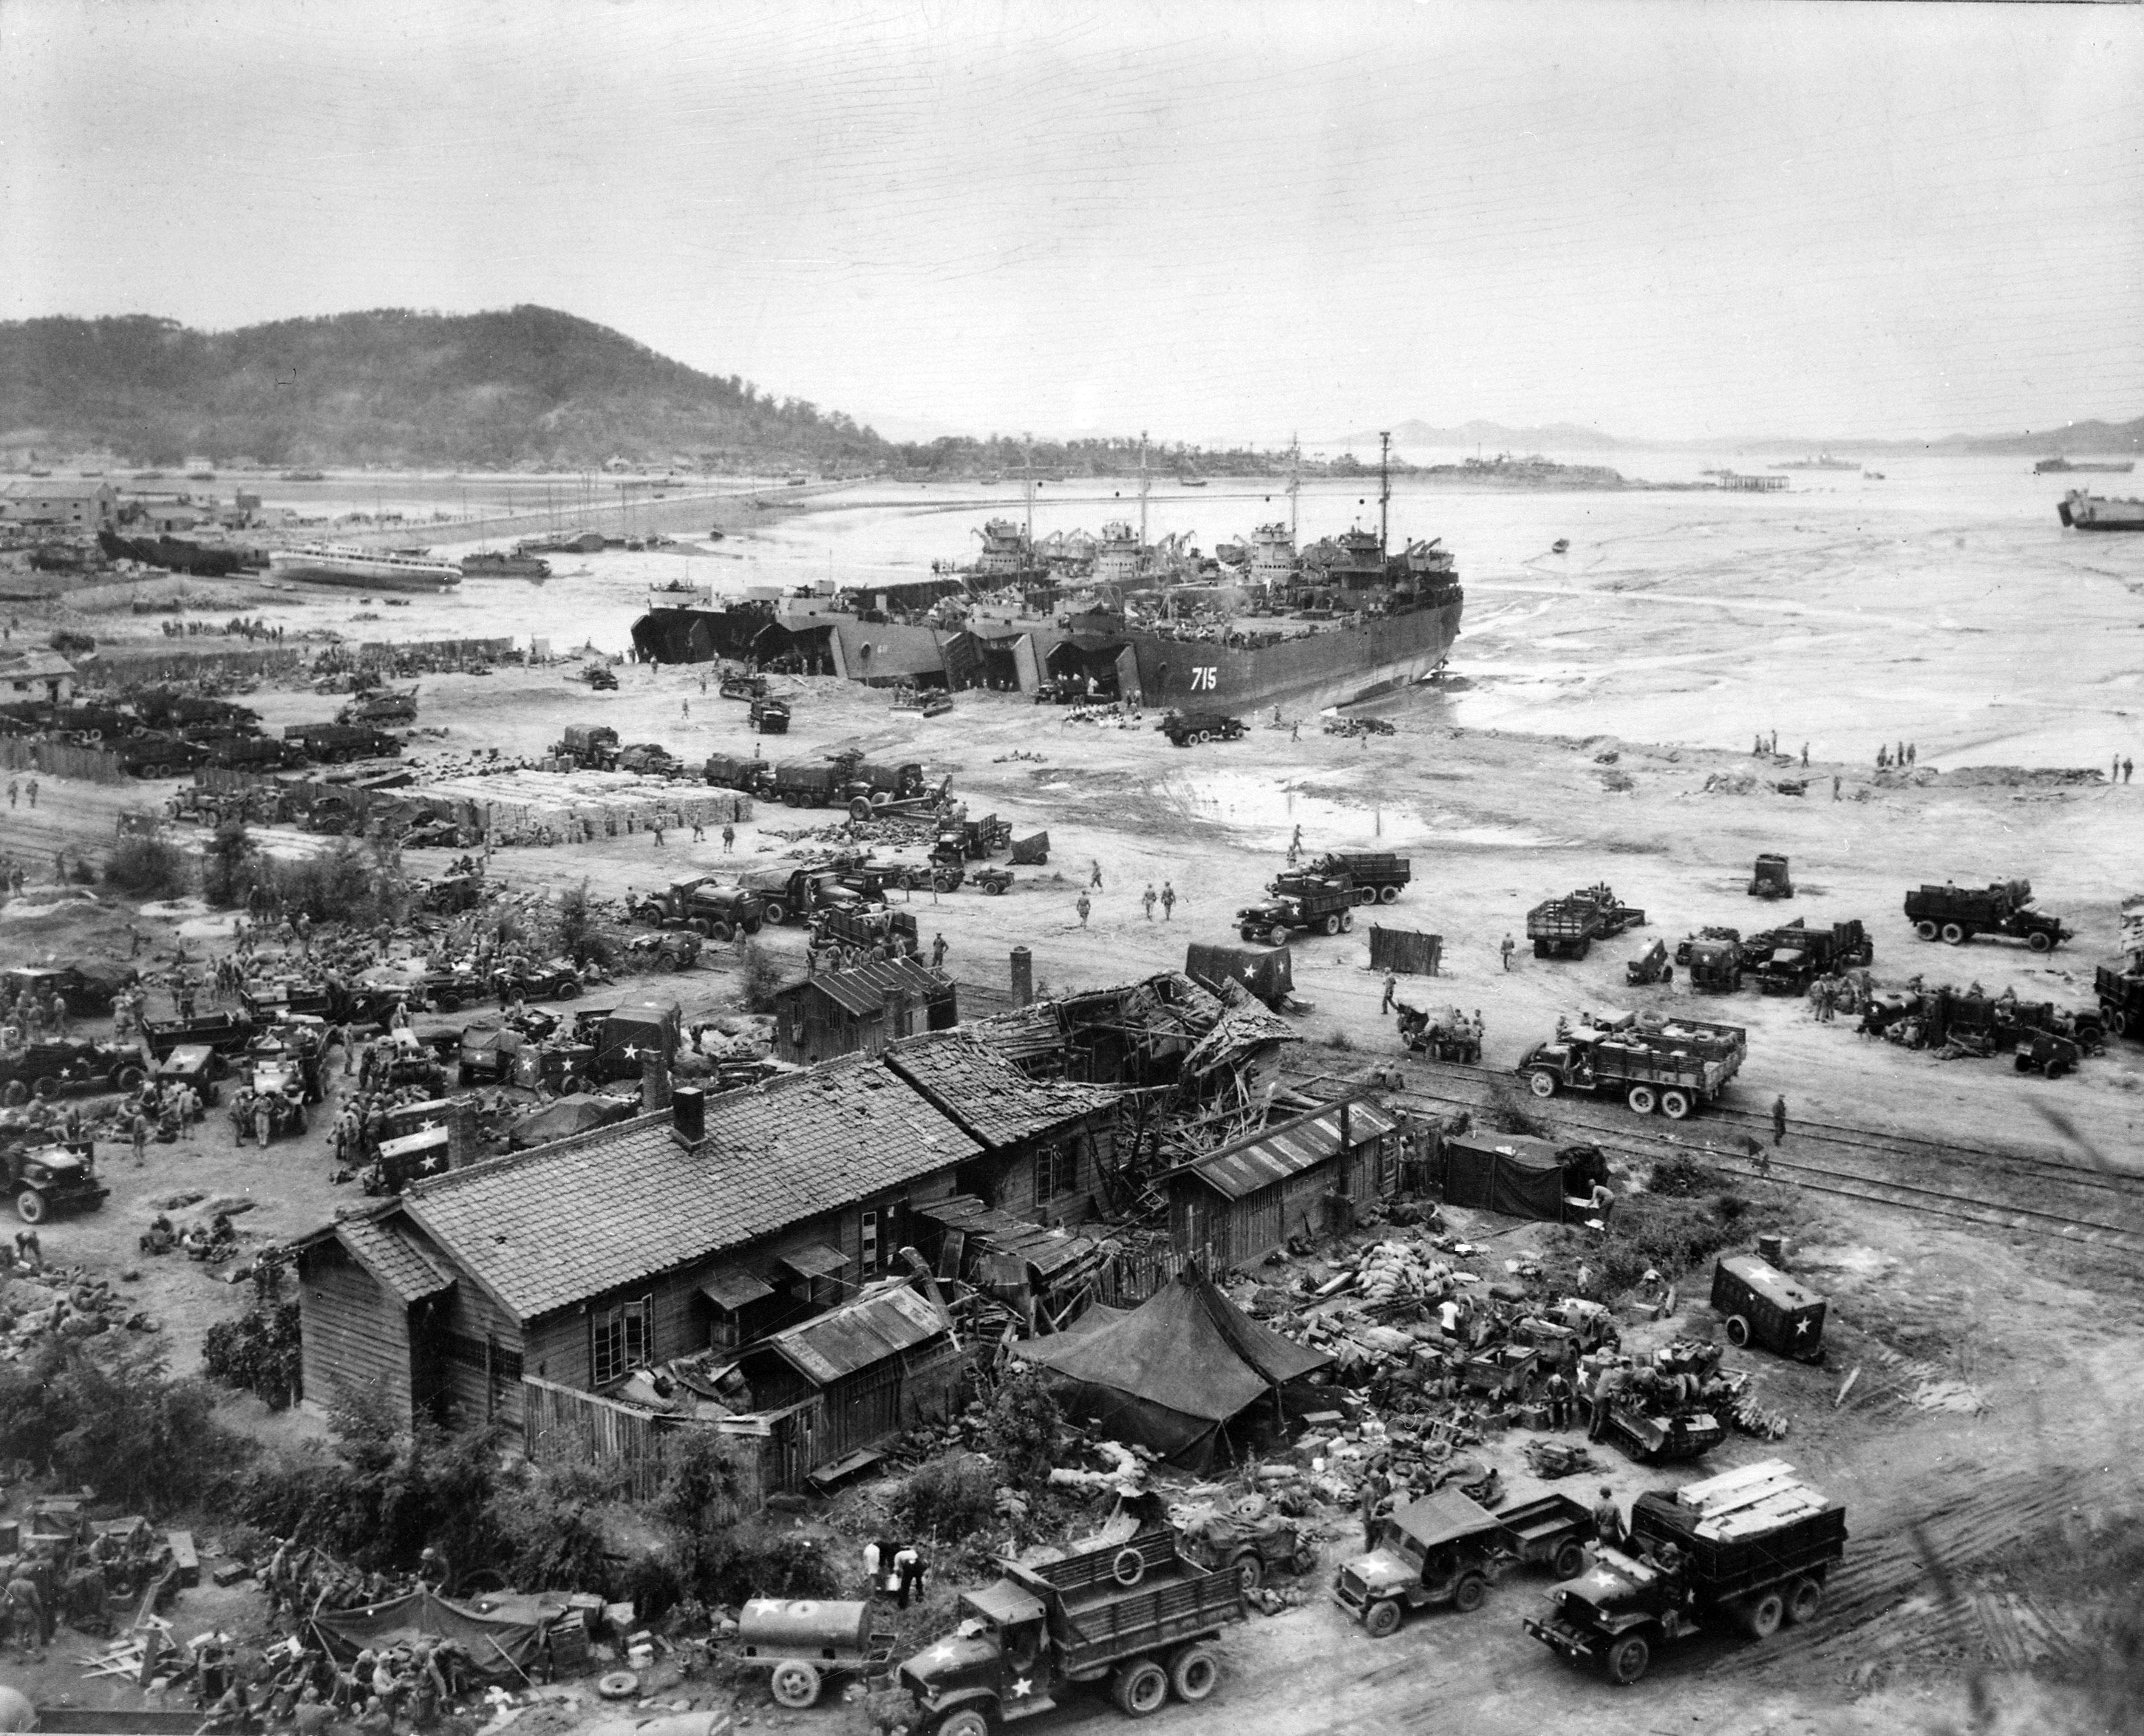 Tanks landing at Inchon, South Korea.